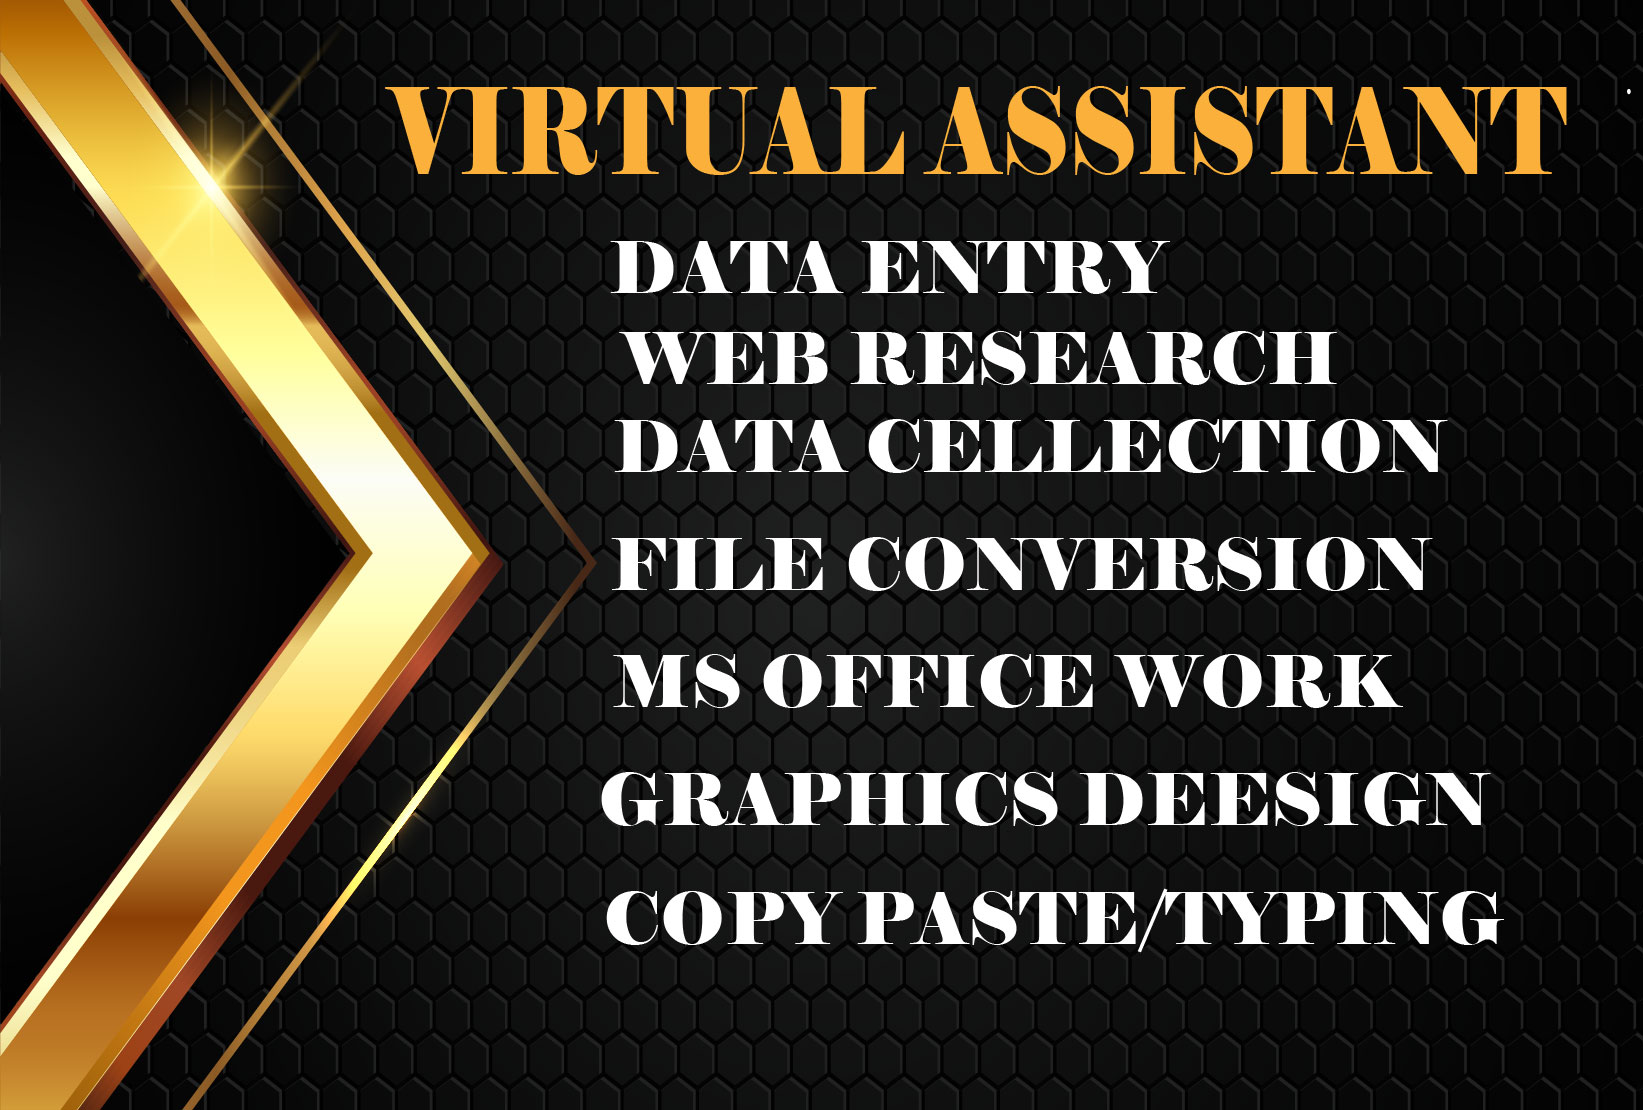 I will be your professional reliable Virtual Assistant